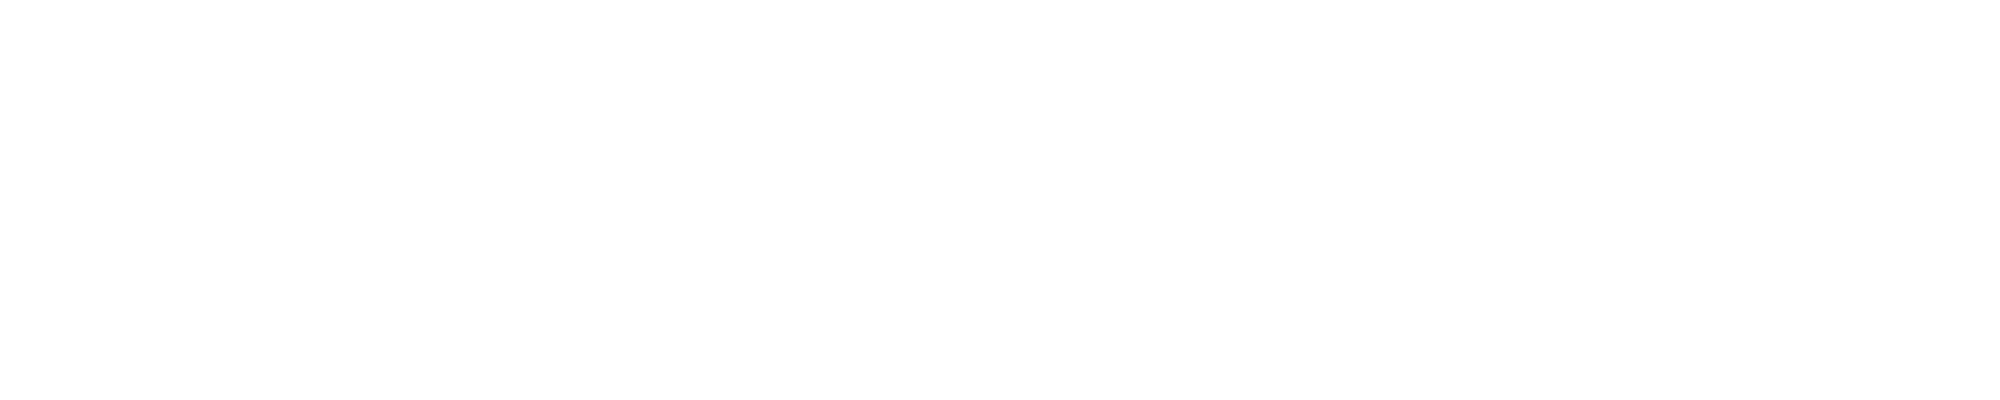 The Fat Crab Harrow